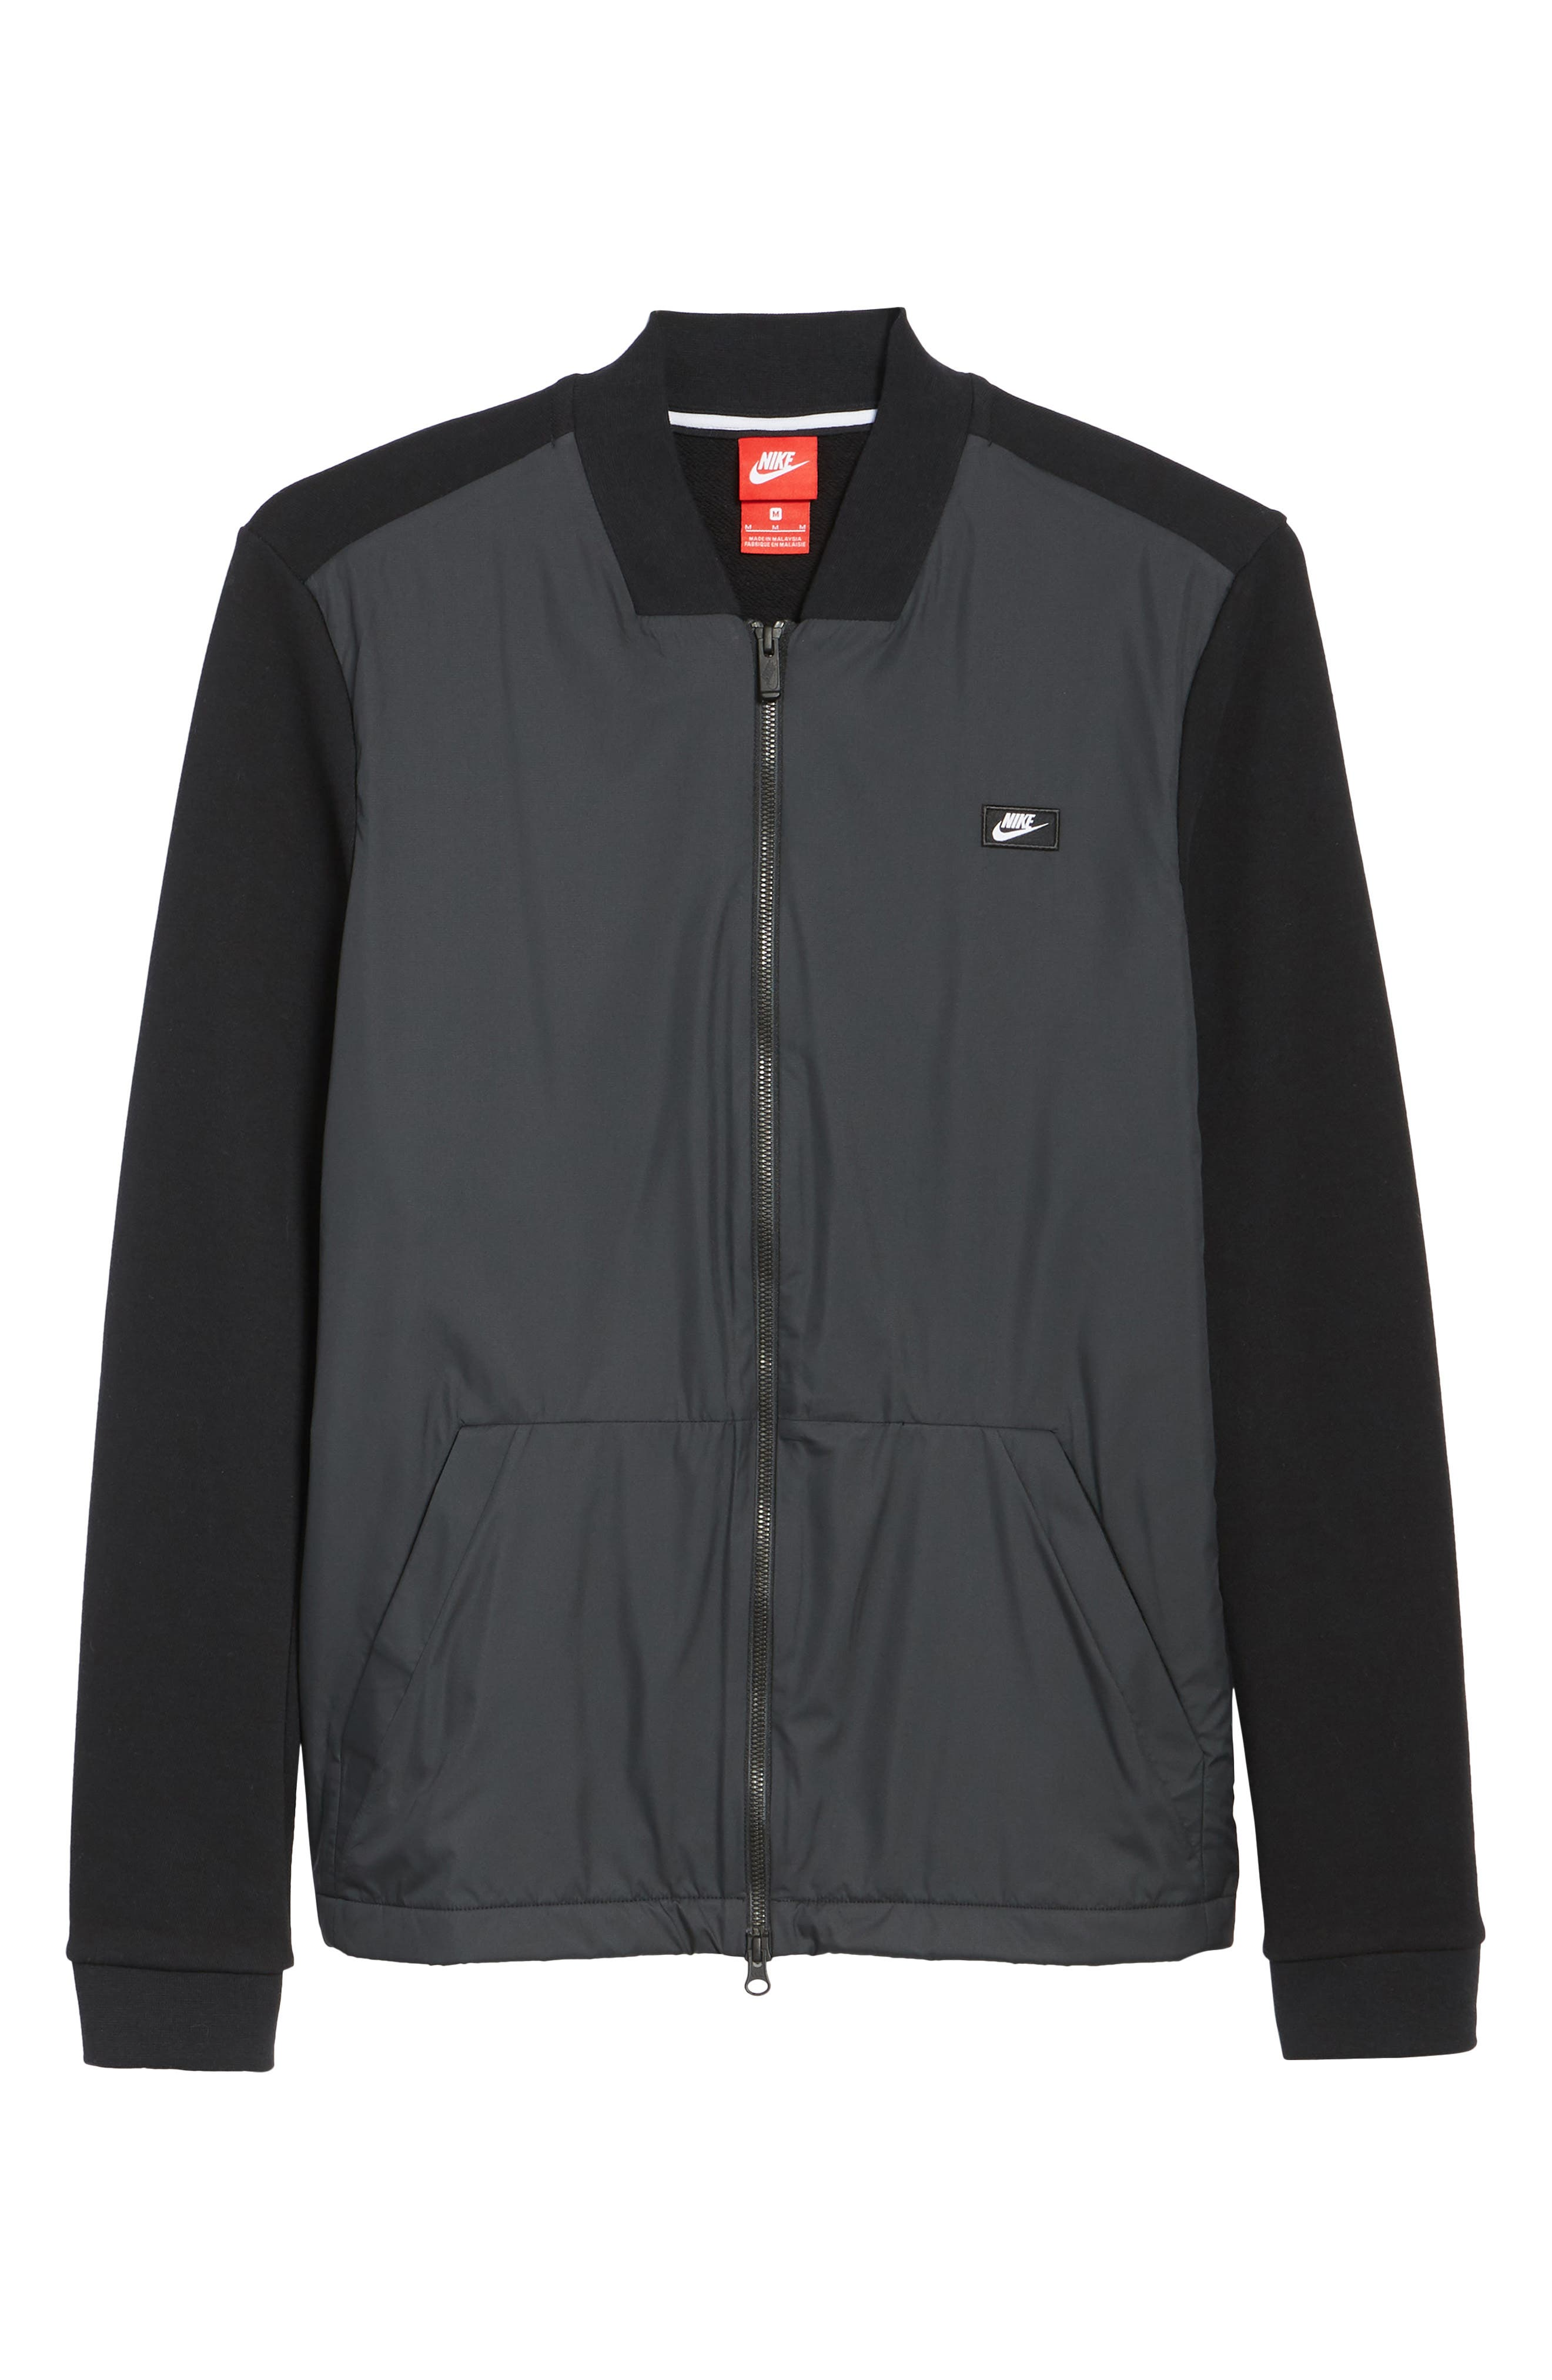 NSW Modern Track Jacket,                             Alternate thumbnail 6, color,                             010